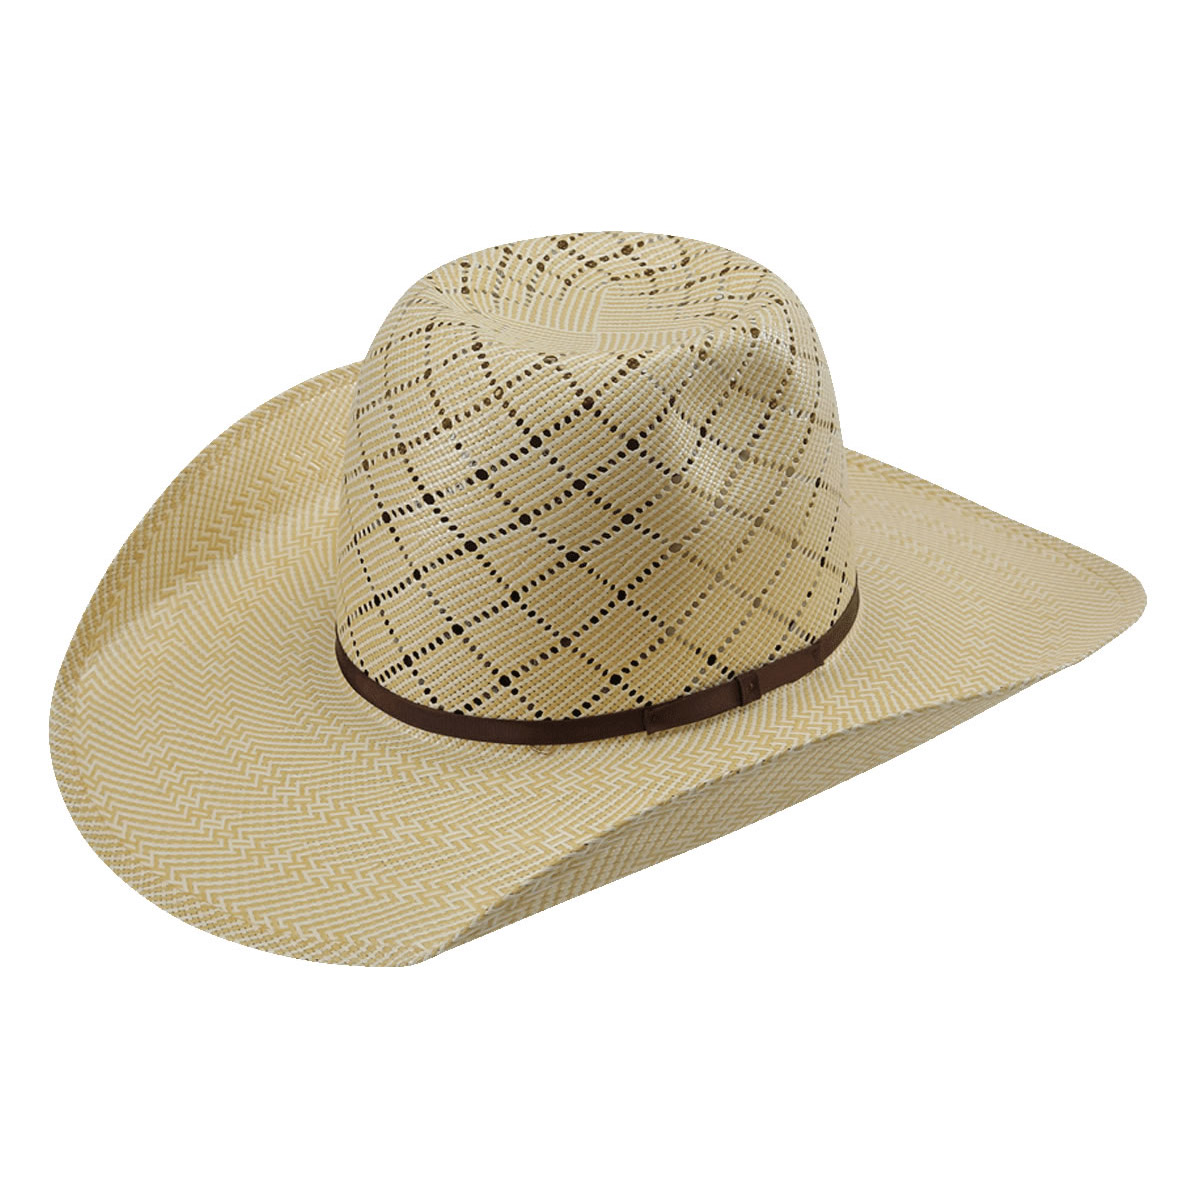 American Hat Co 20☆ Patchwork Crossbred Straw Hat - Wheat. Tap to expand f1bef3fd1aa0